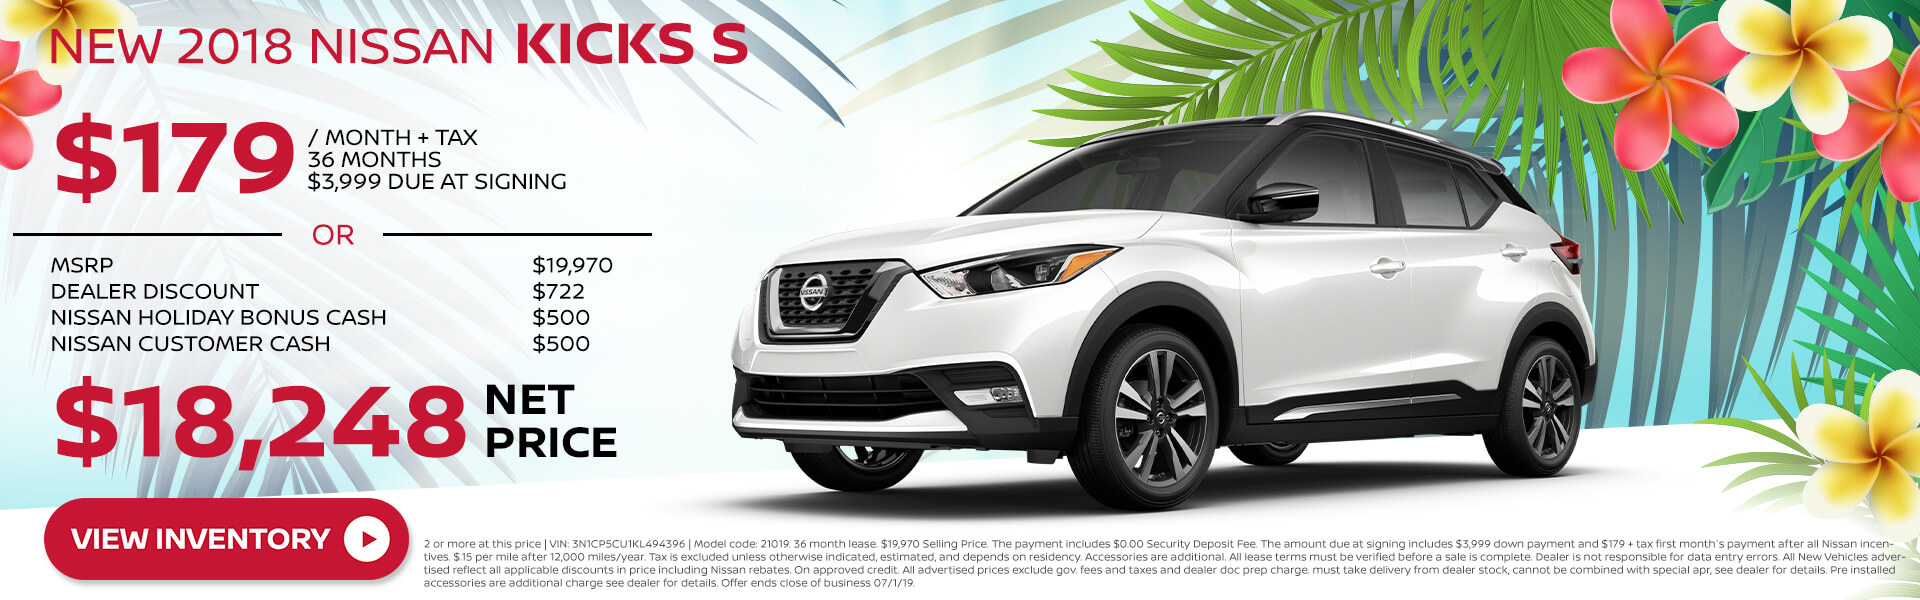 2018 Nissan Kicks - Lease for $179